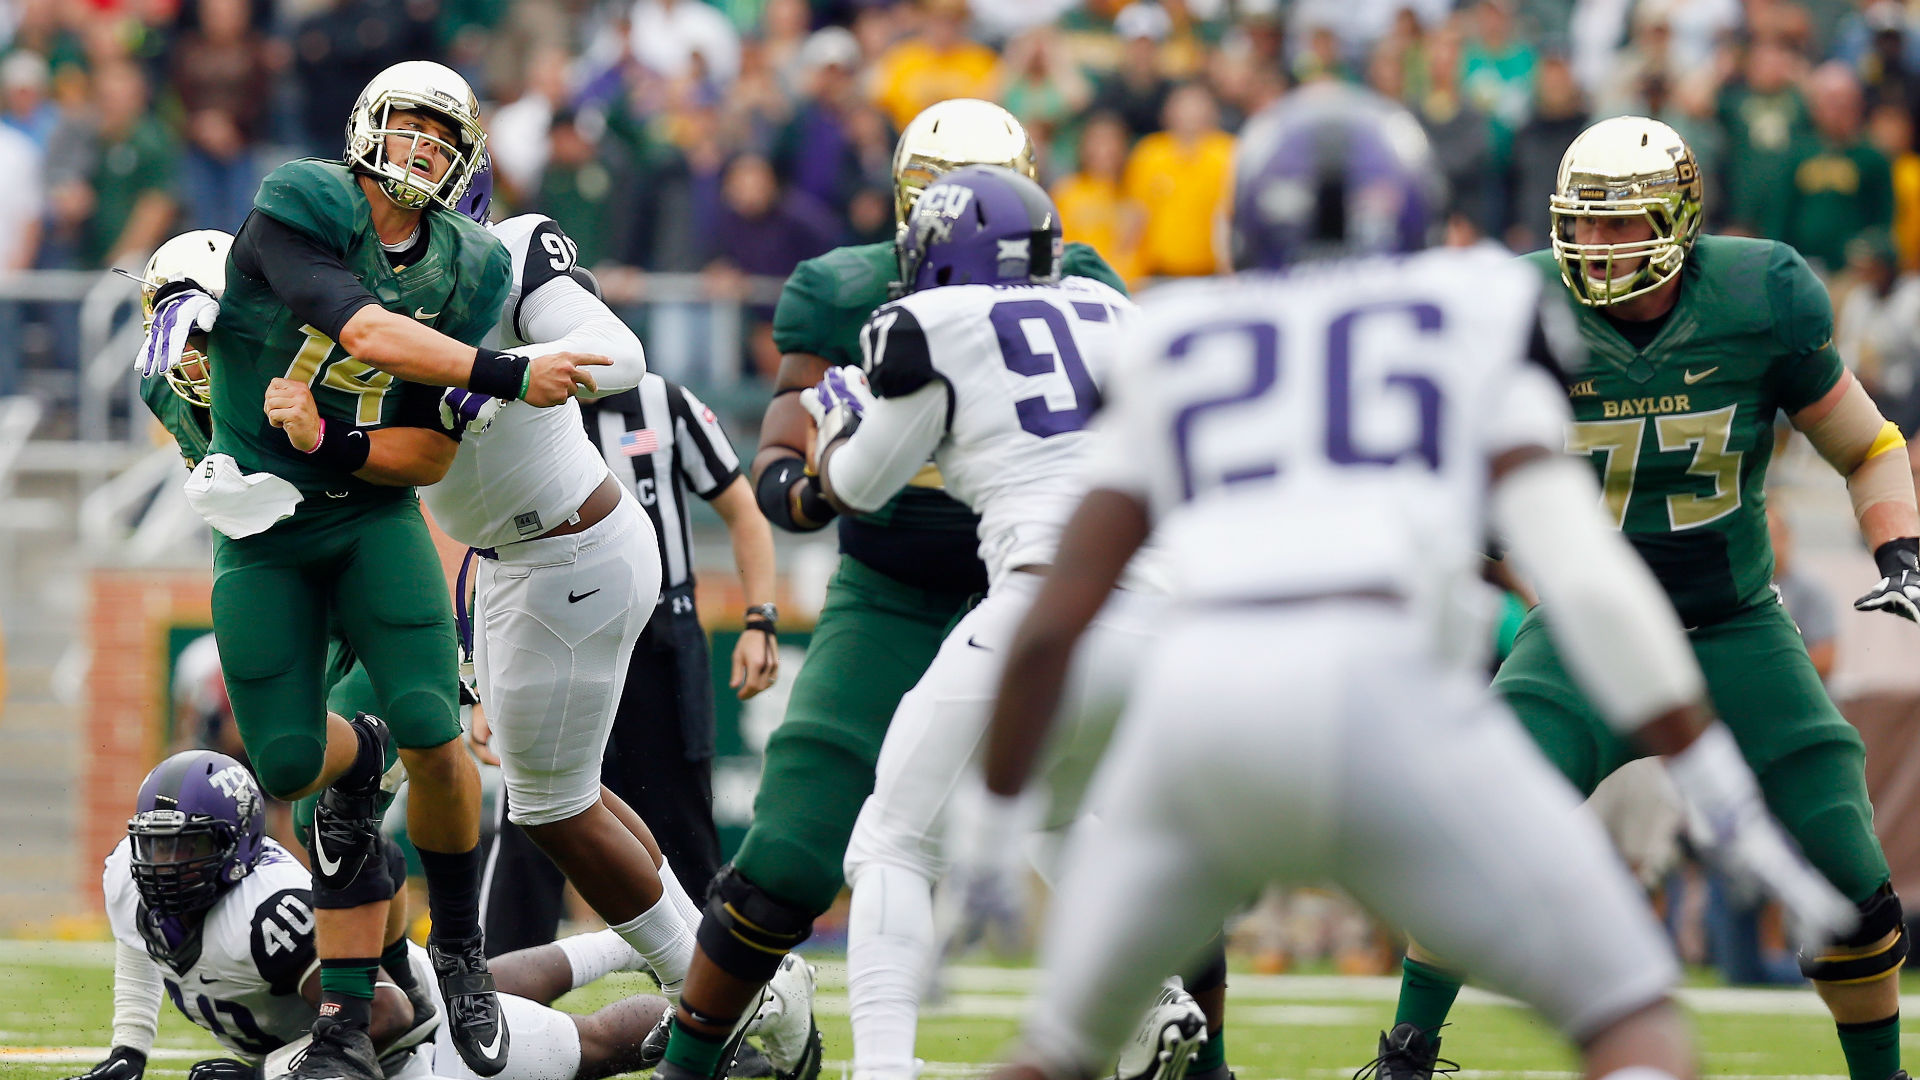 TCU returns kickoff for 94-yard touchdown against Baylor